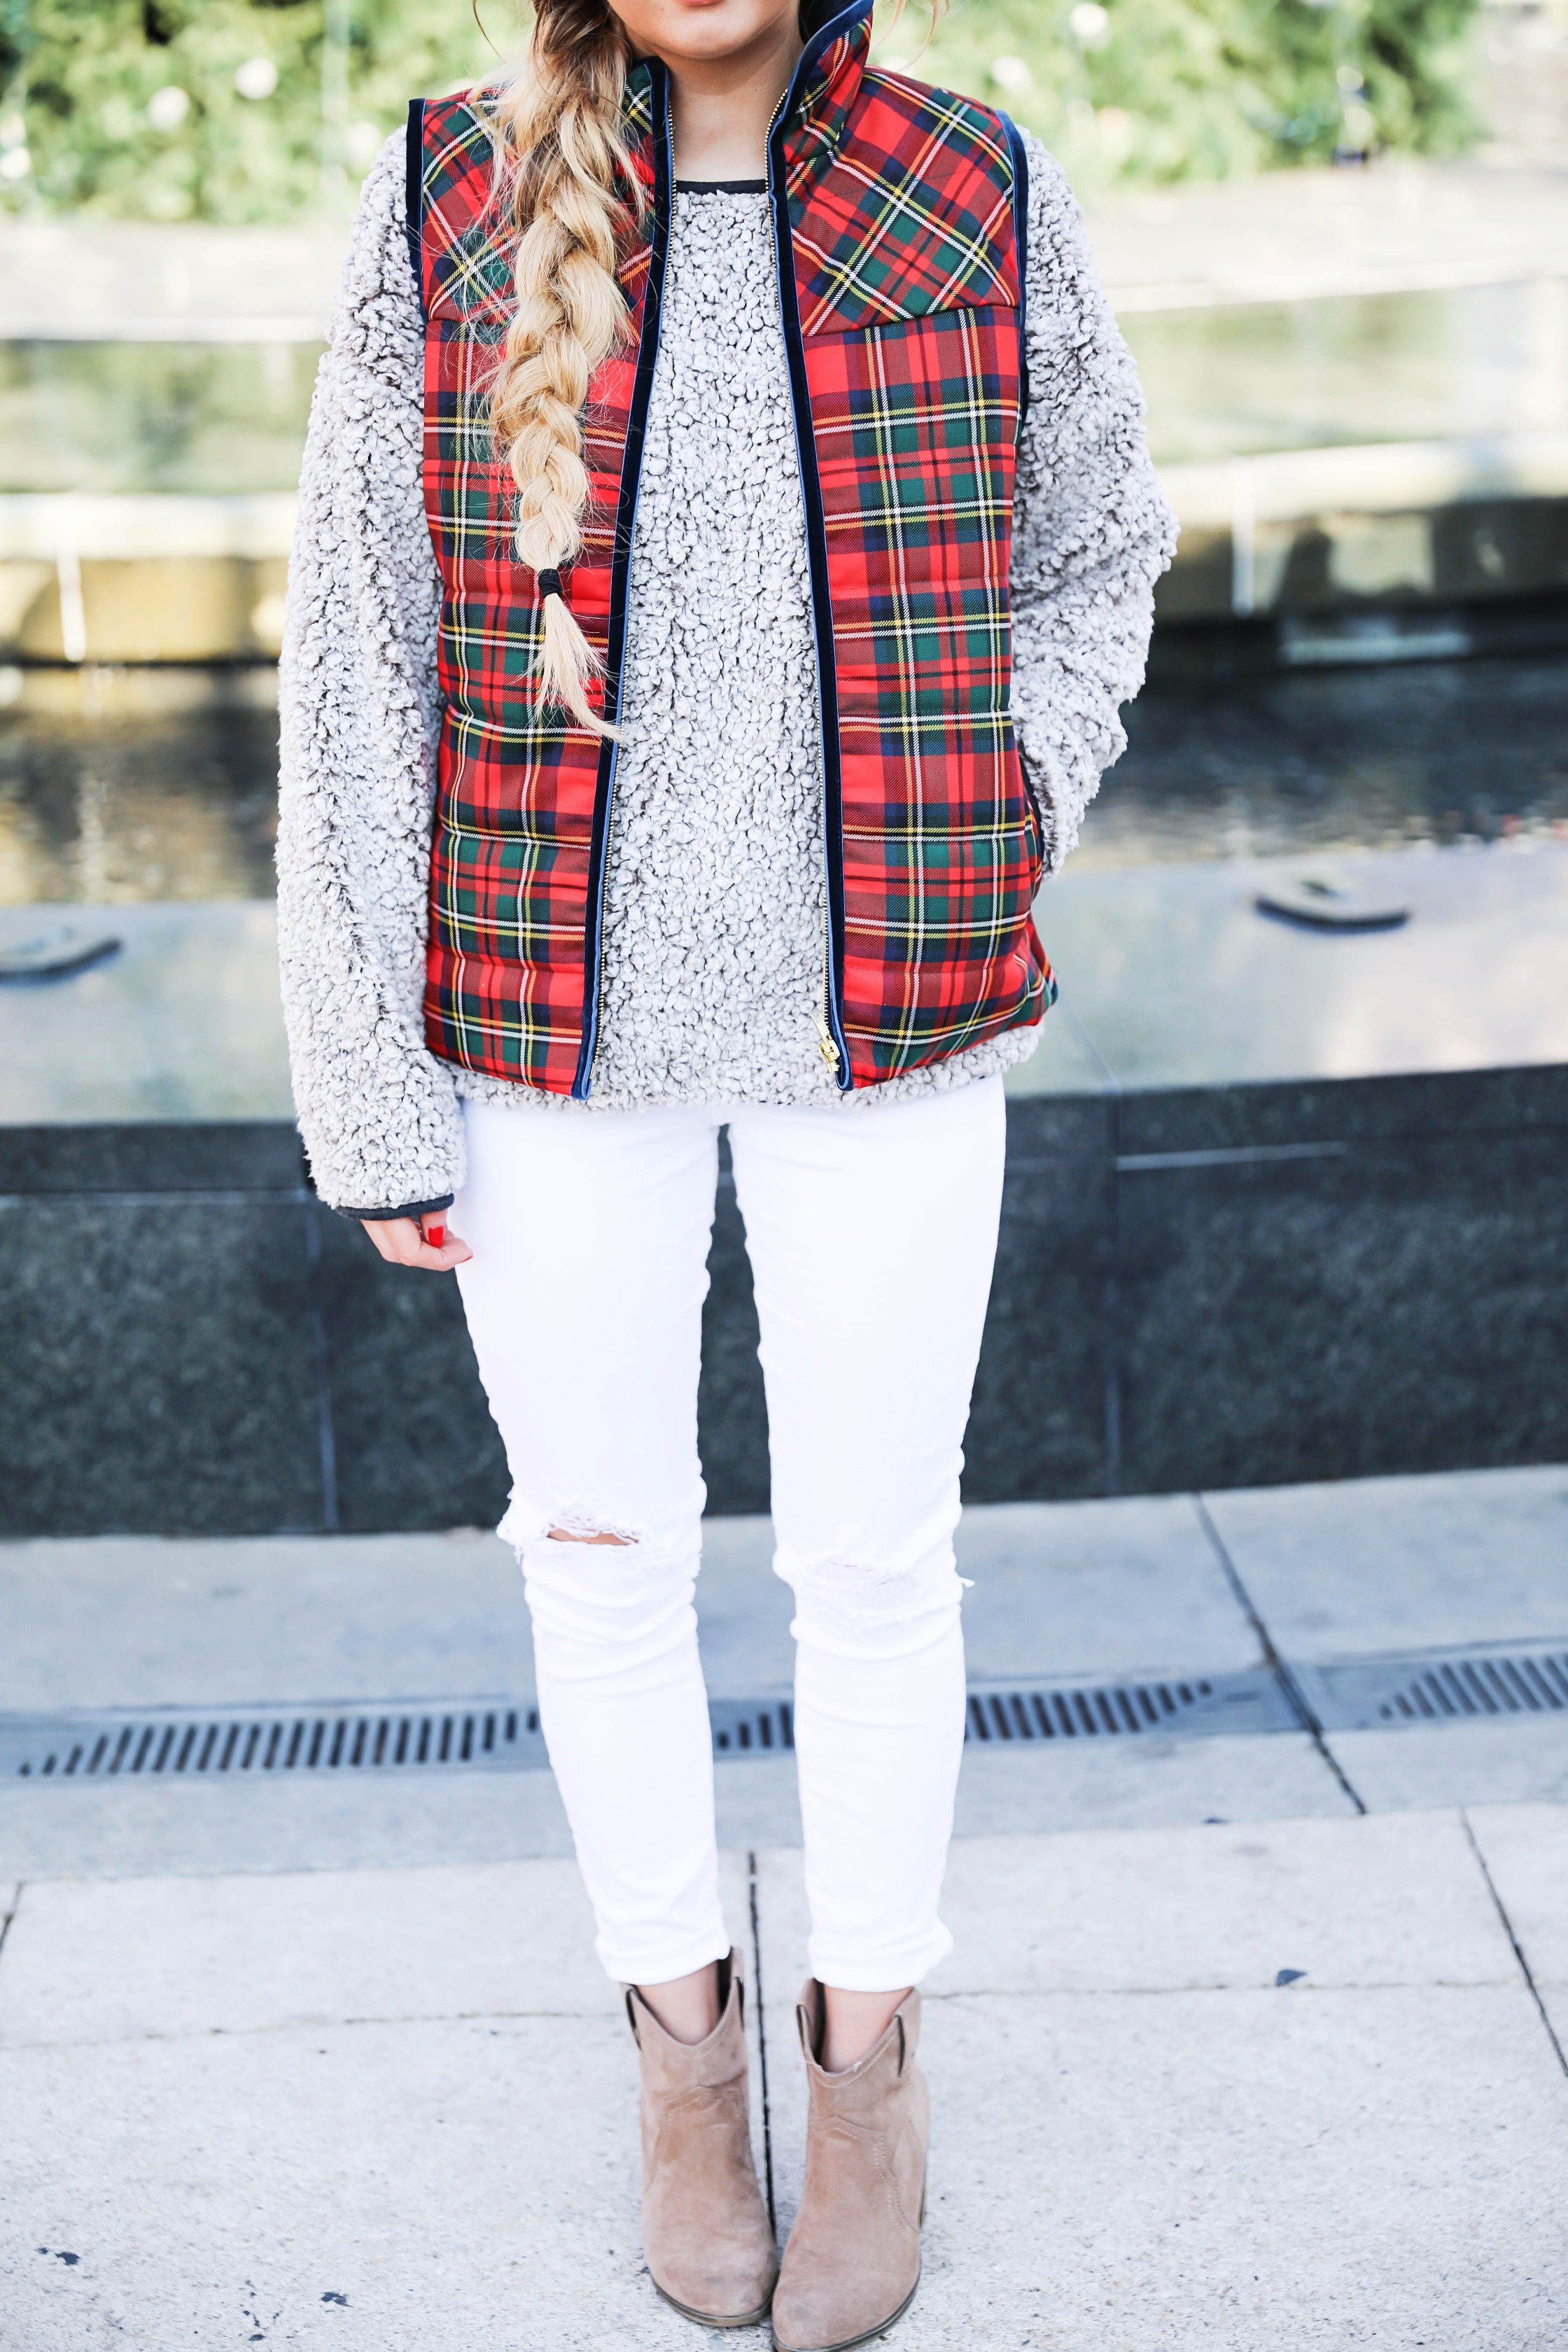 Tartan plaid j.crew vest with Dylan true grit comfy crewneck sweatshirt with white ripped jeans and side braid with long hair. Find the details for this winter outfit on fashion blog daily dose of charm by lauren Lindmark